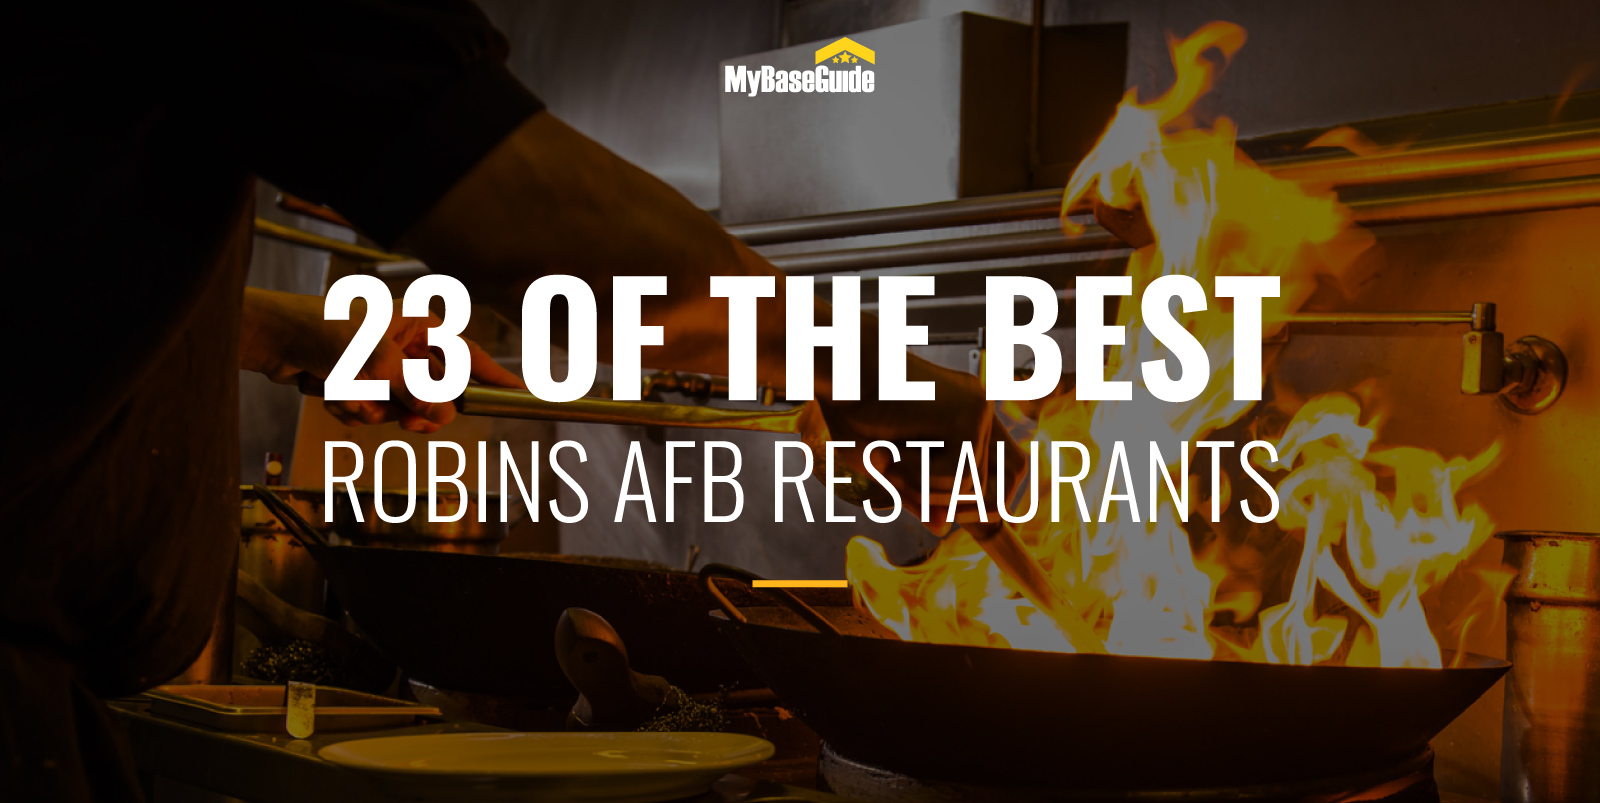 23 of the Best Robins AFB Base Restaurants